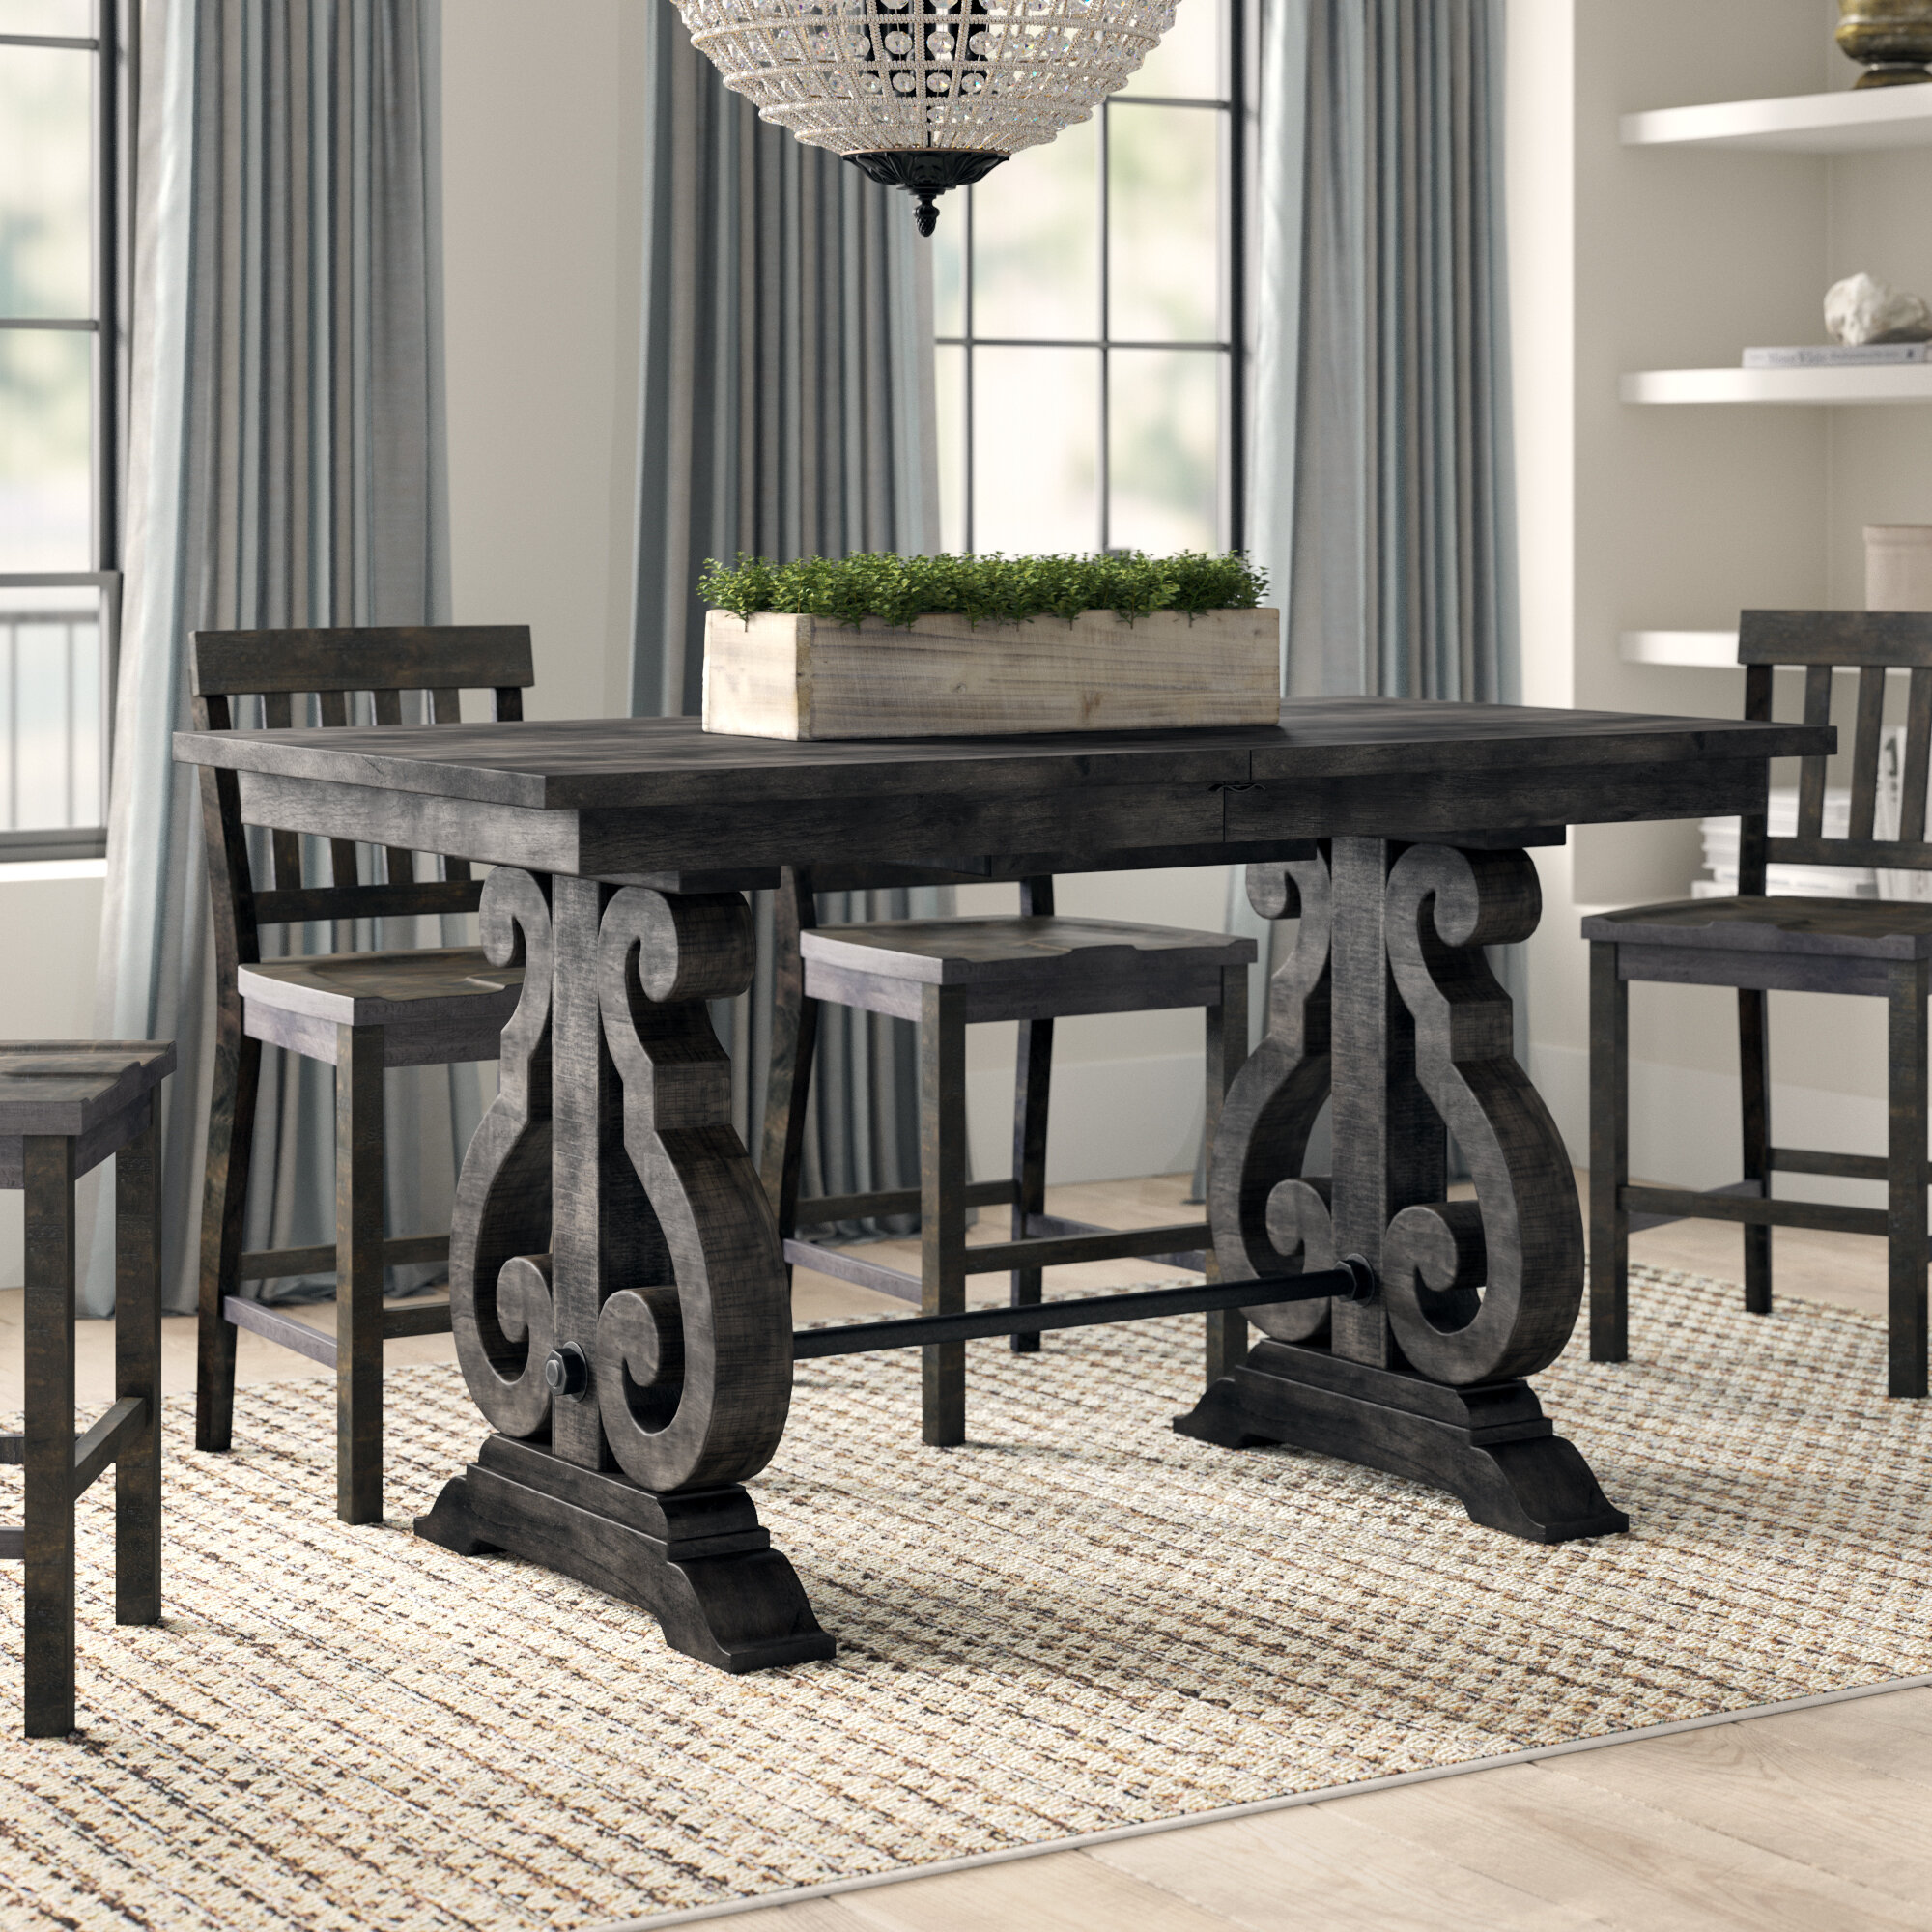 Ellenton Coffee Table With Storage: Greyleigh Ellenton Counter Height Extendable Solid Wood